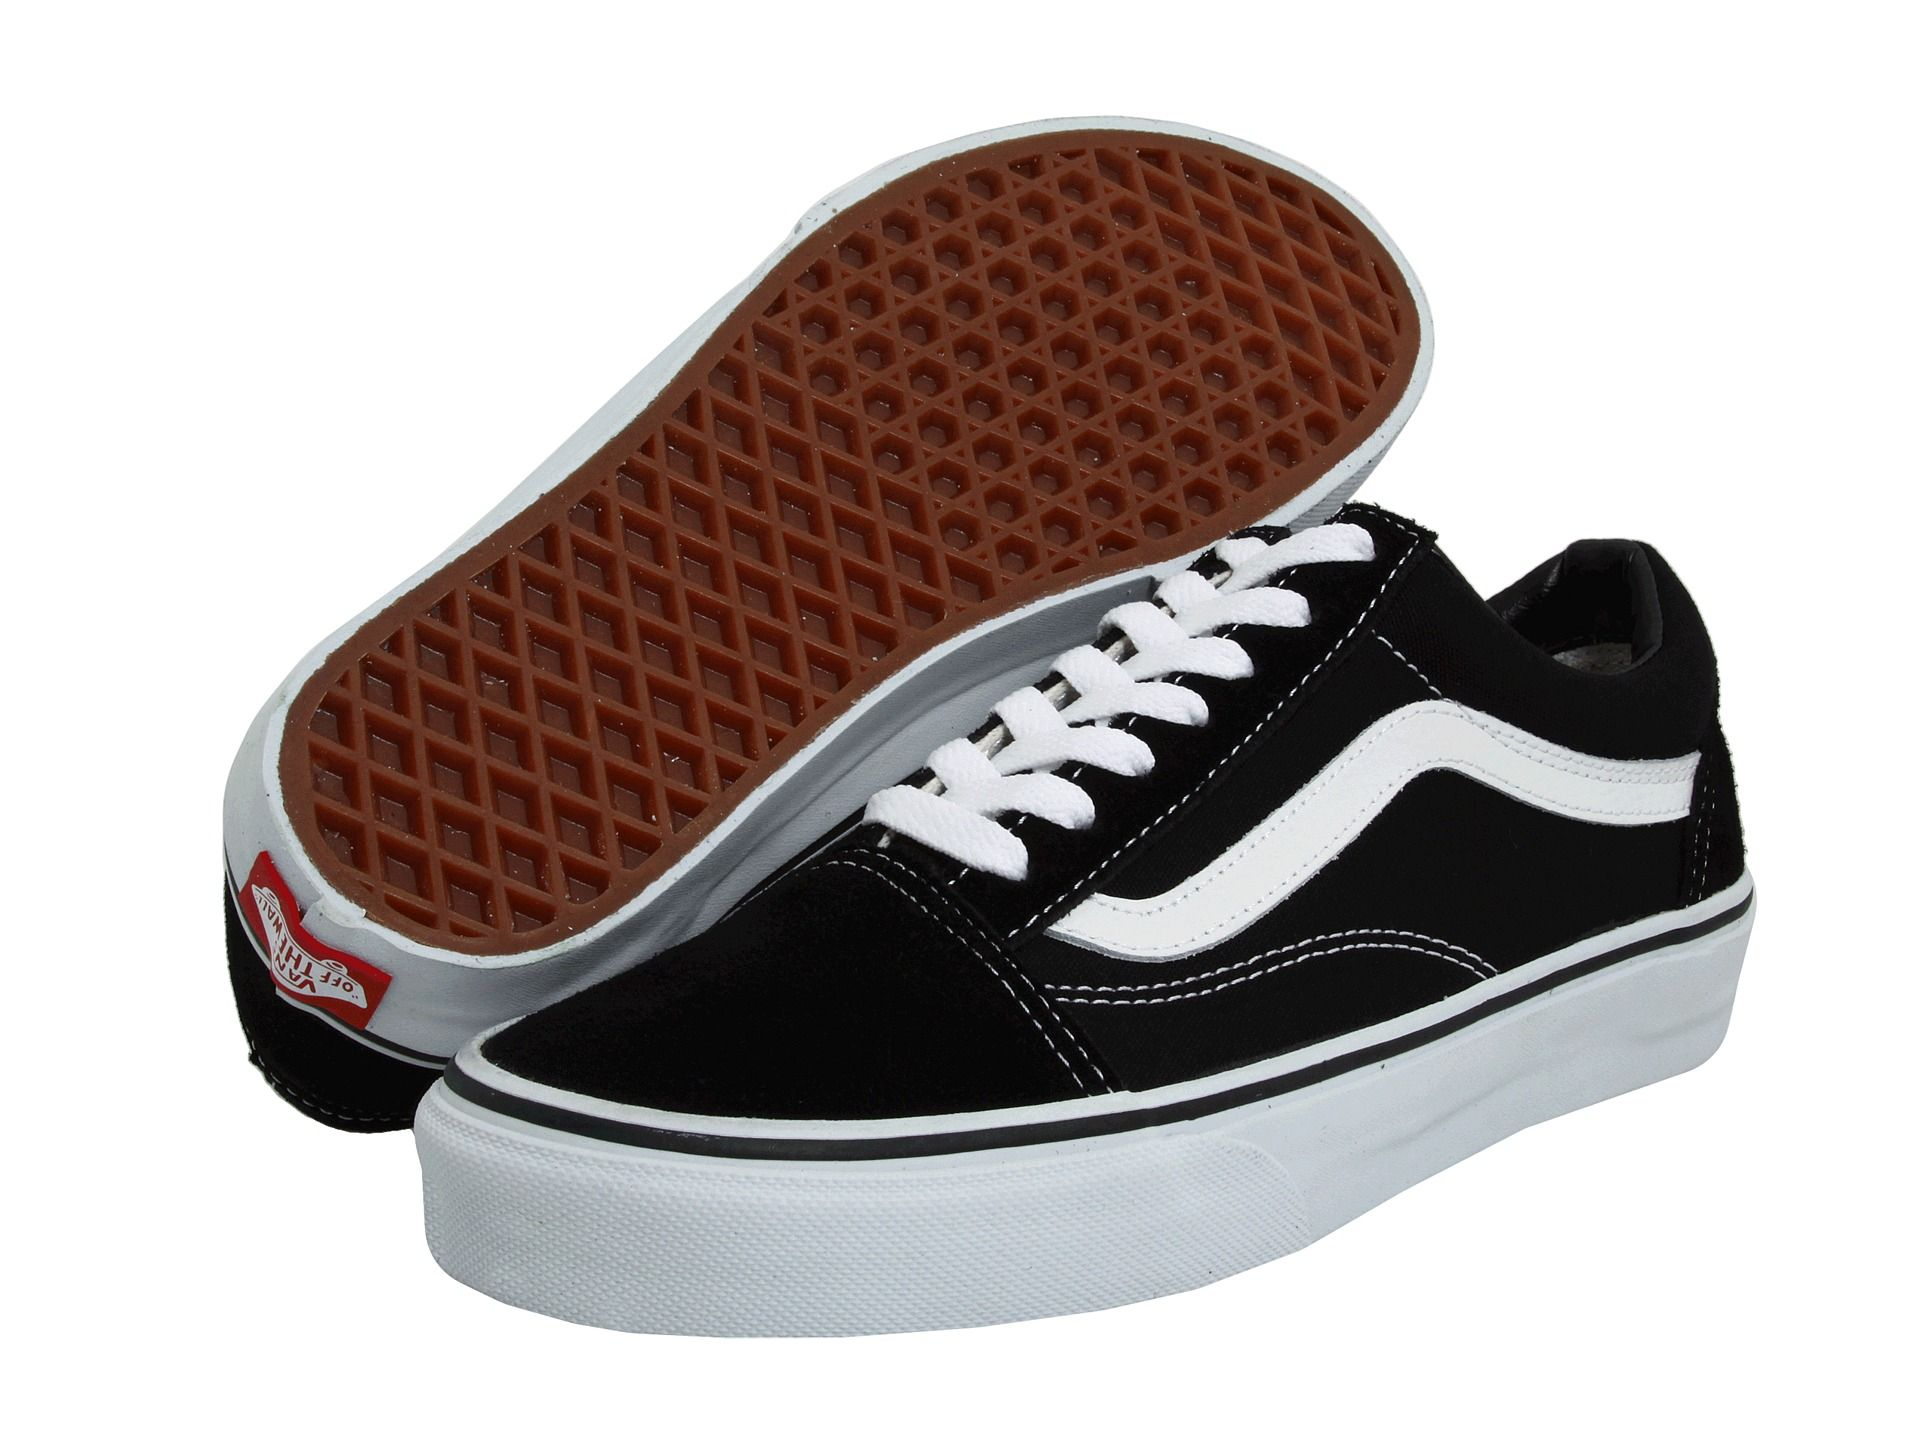 bd1674af0 Vans Old Skool™ Core Classics Black - Zappos.com Free Shipping BOTH Ways